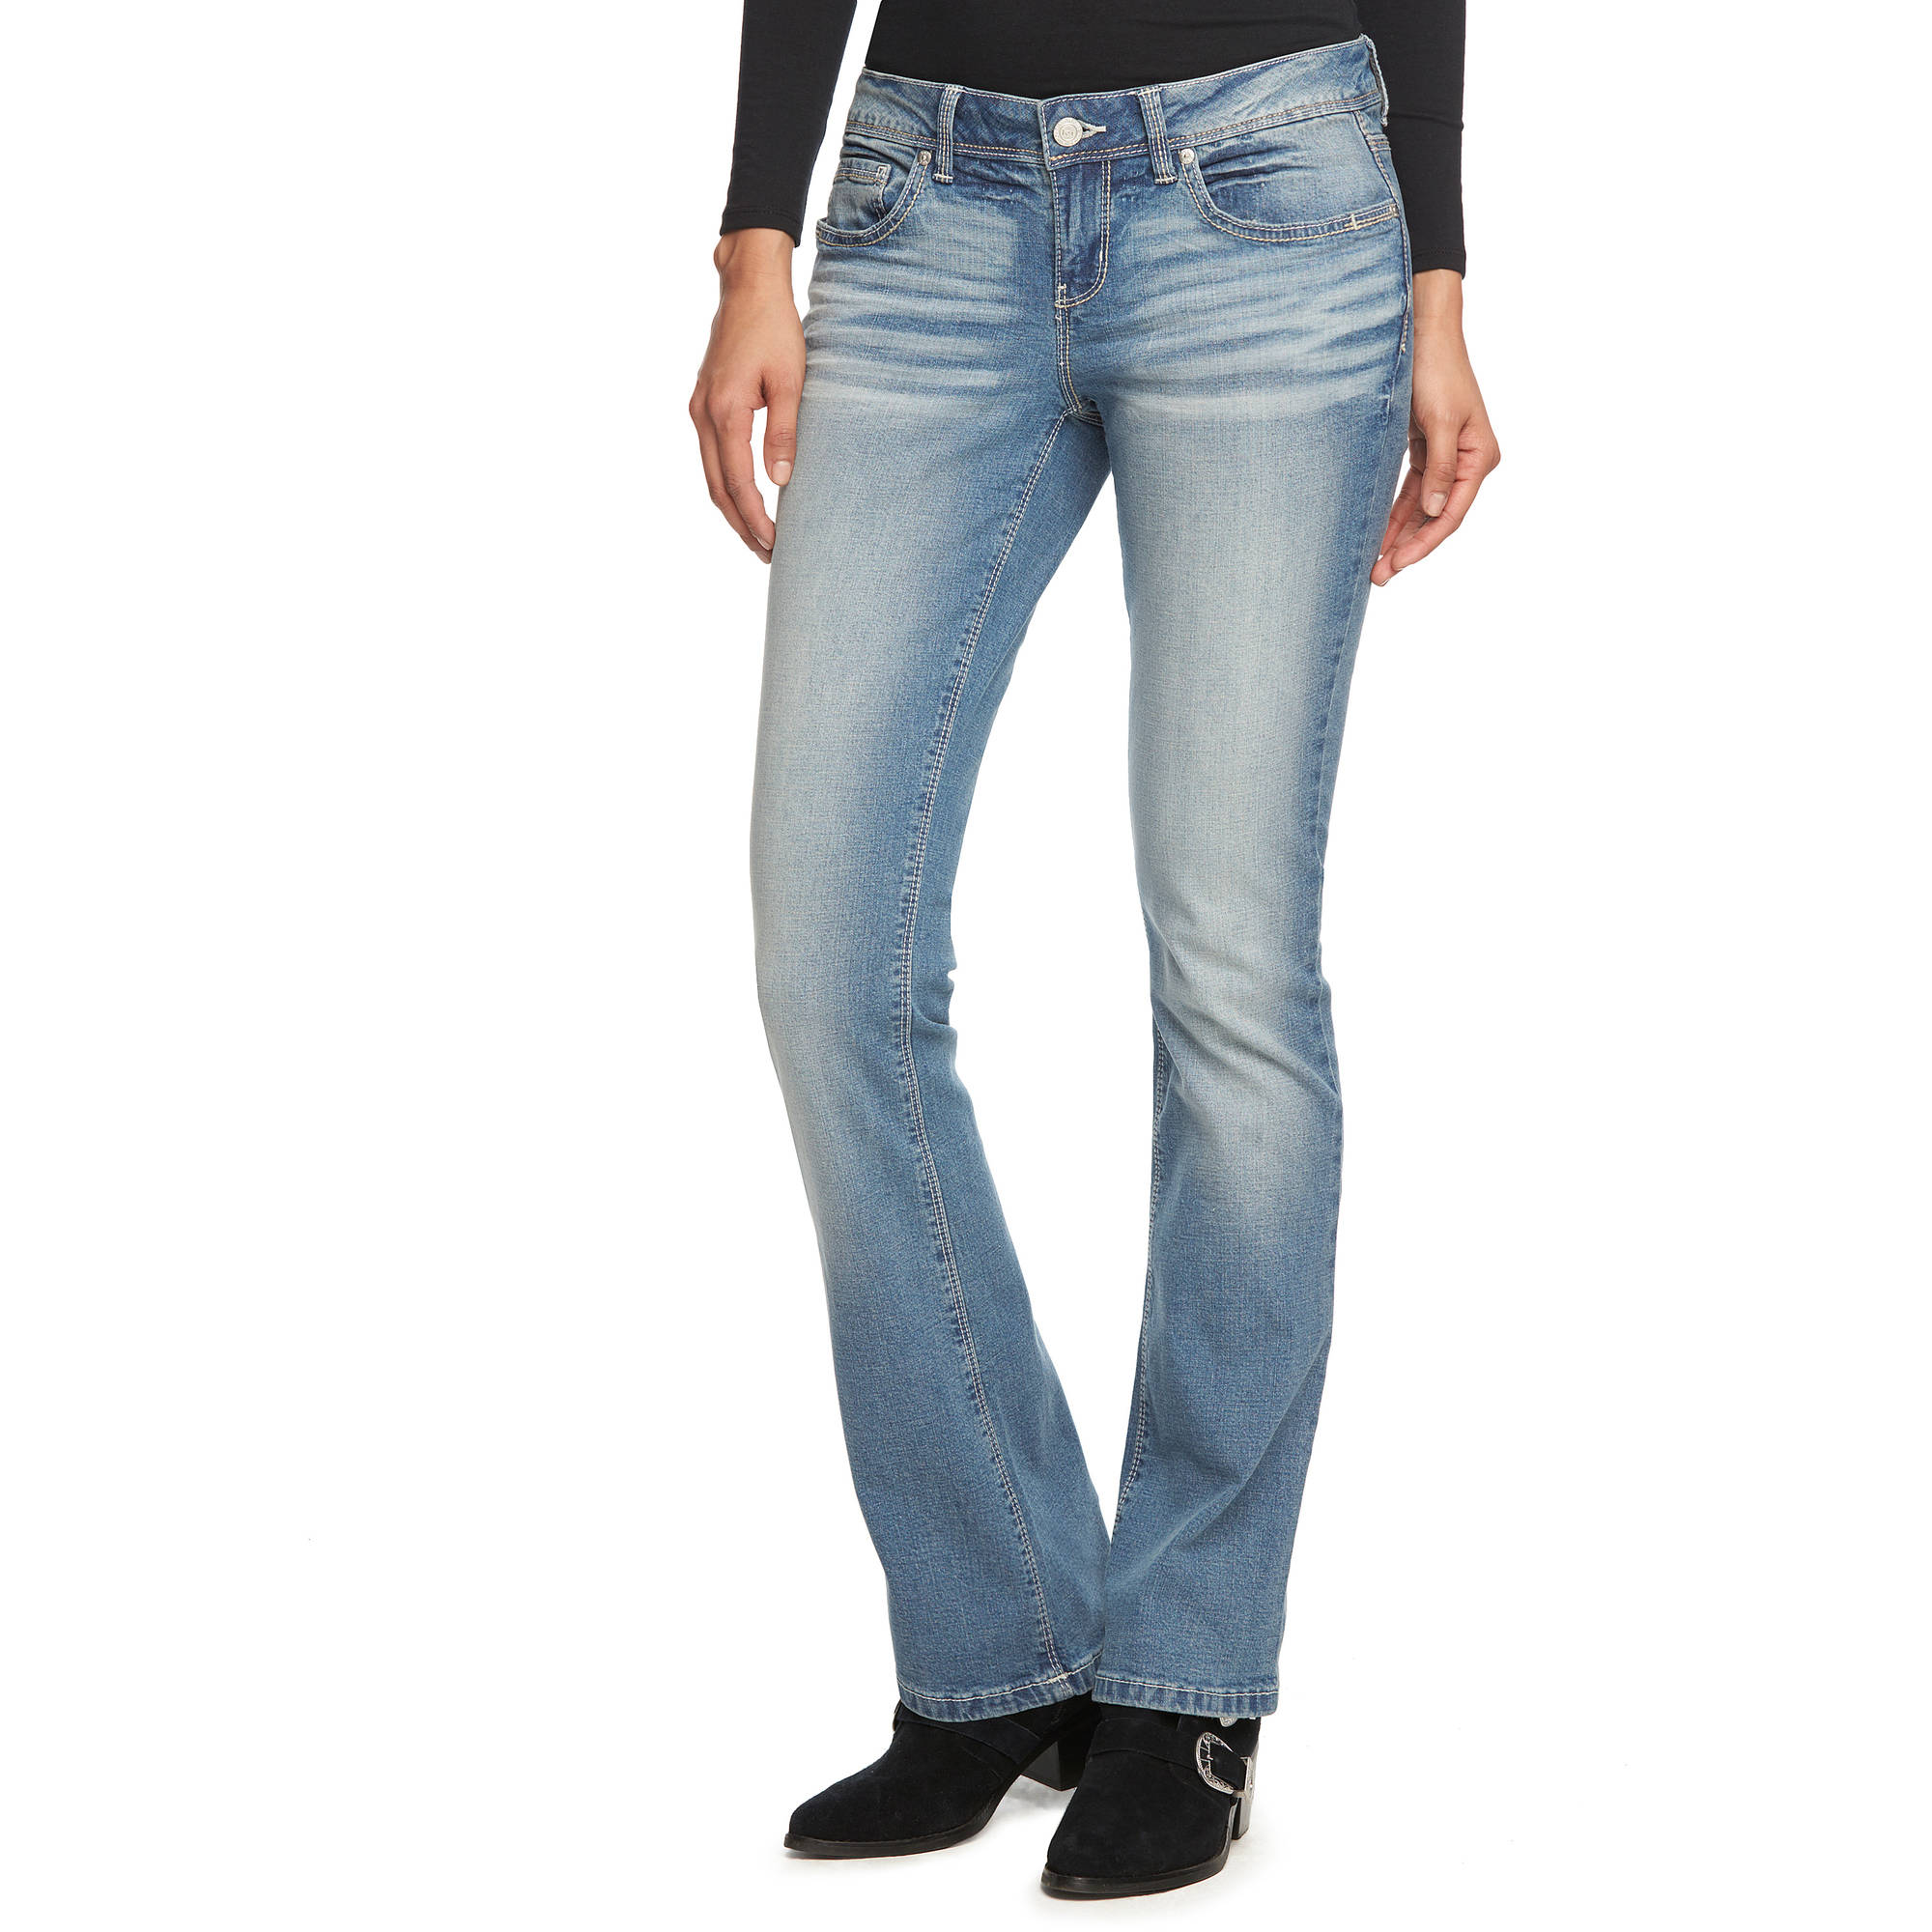 L.E.I. Juniors' Ashley Slim Bootcut Jeans Review & Price Compare 8746